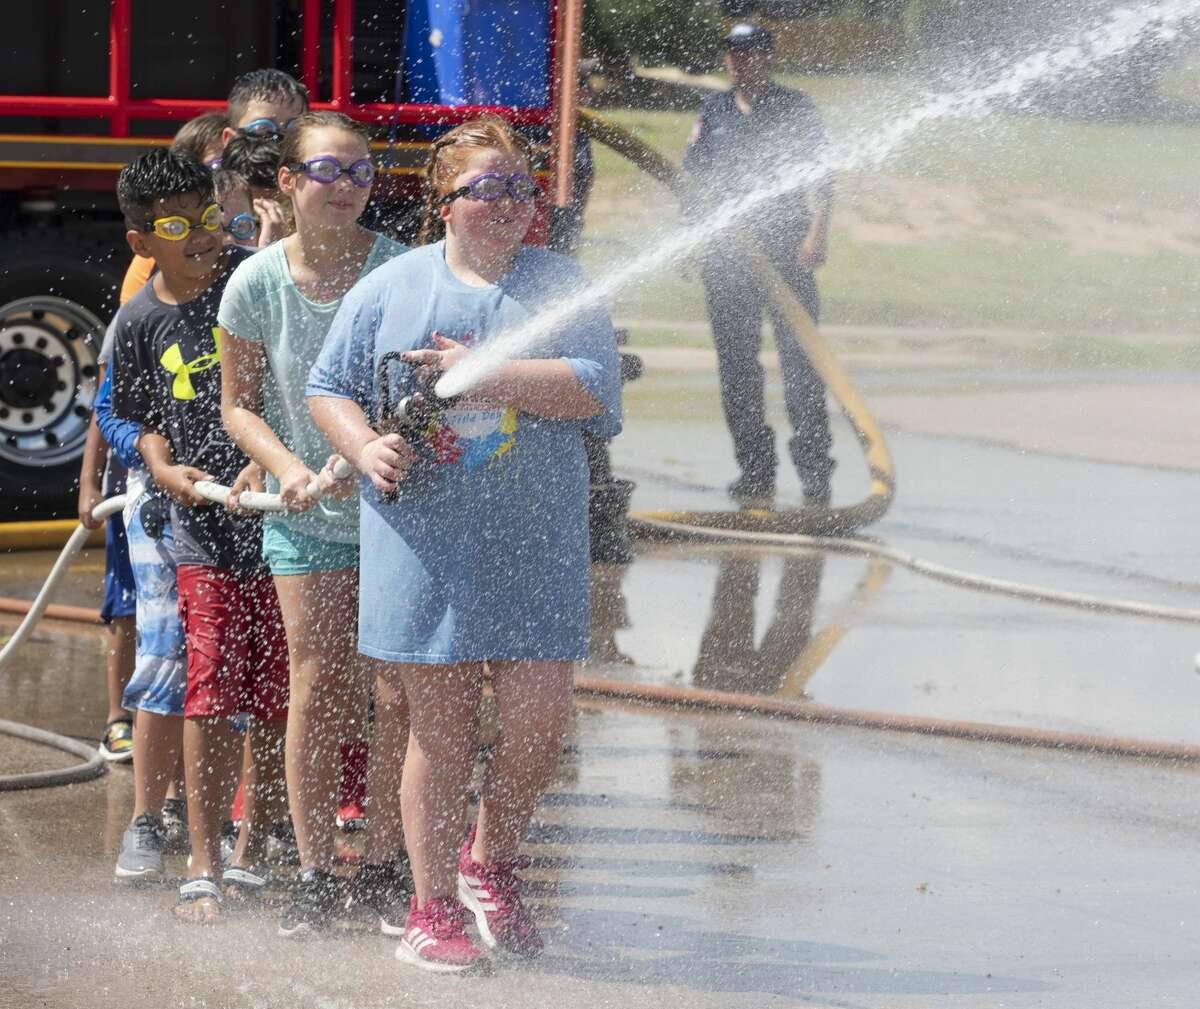 Midlanders try to beat the heat 07/30/19 at the annual Wet n' Wild with the Midland Fire Department, for the kick-off of the 2019 Wellness Tour. Tim Fischer/Reporter-Telegram